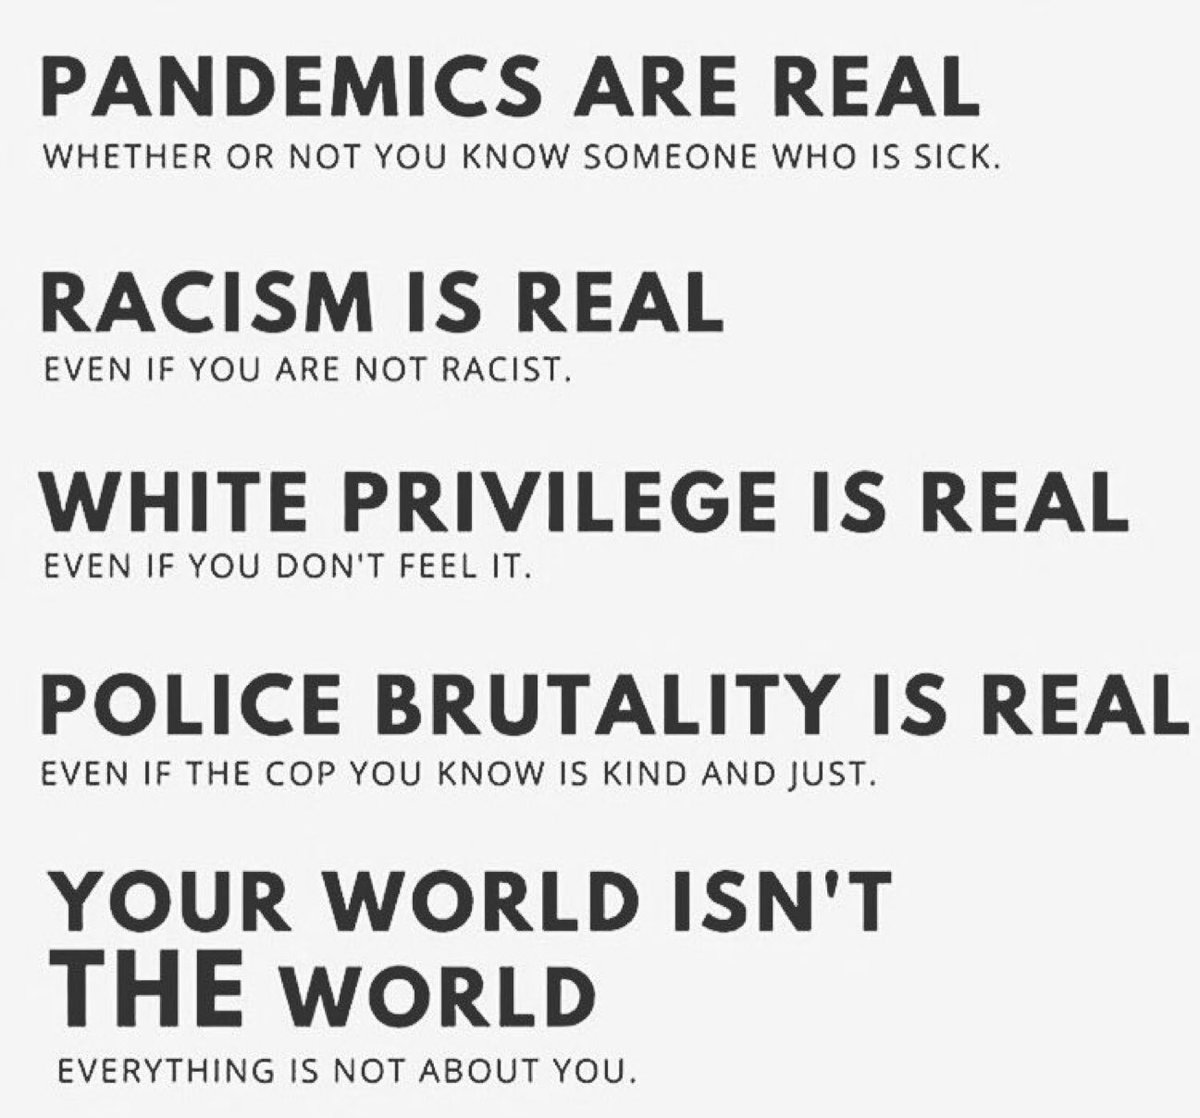 Your world isn't THE world. #racism #PoliceReform https://t.co/jeH3b5dAfb